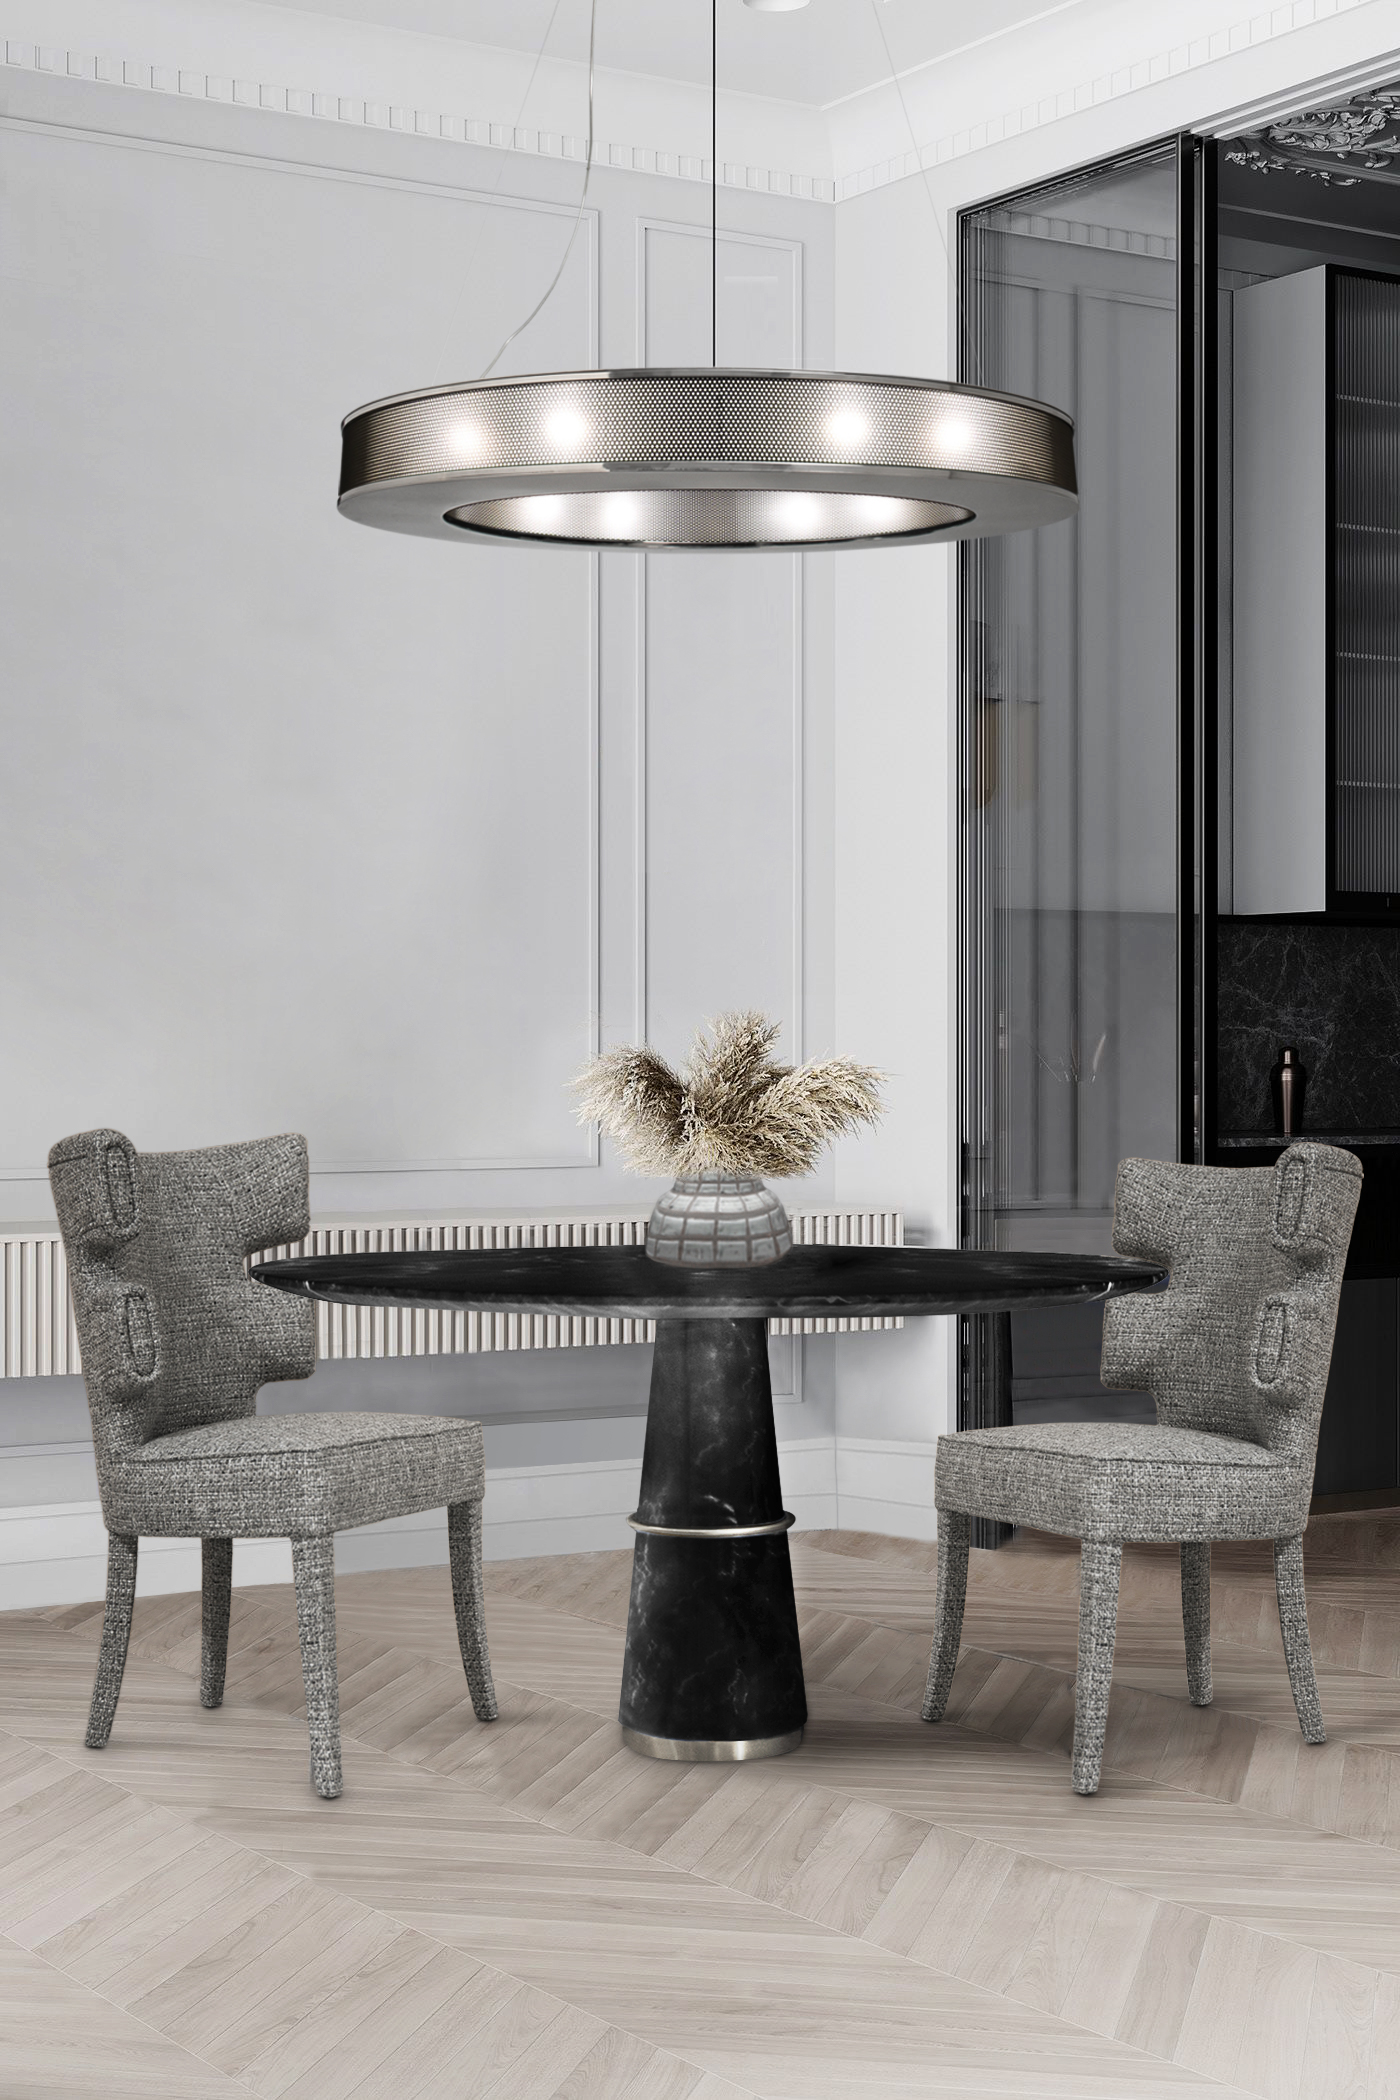 20 Dining Chairs You Will Need For A Modern Dining Room dining chairs 20 Dining Chairs You Will Need For A Modern Dining Room BB gaia agra dining